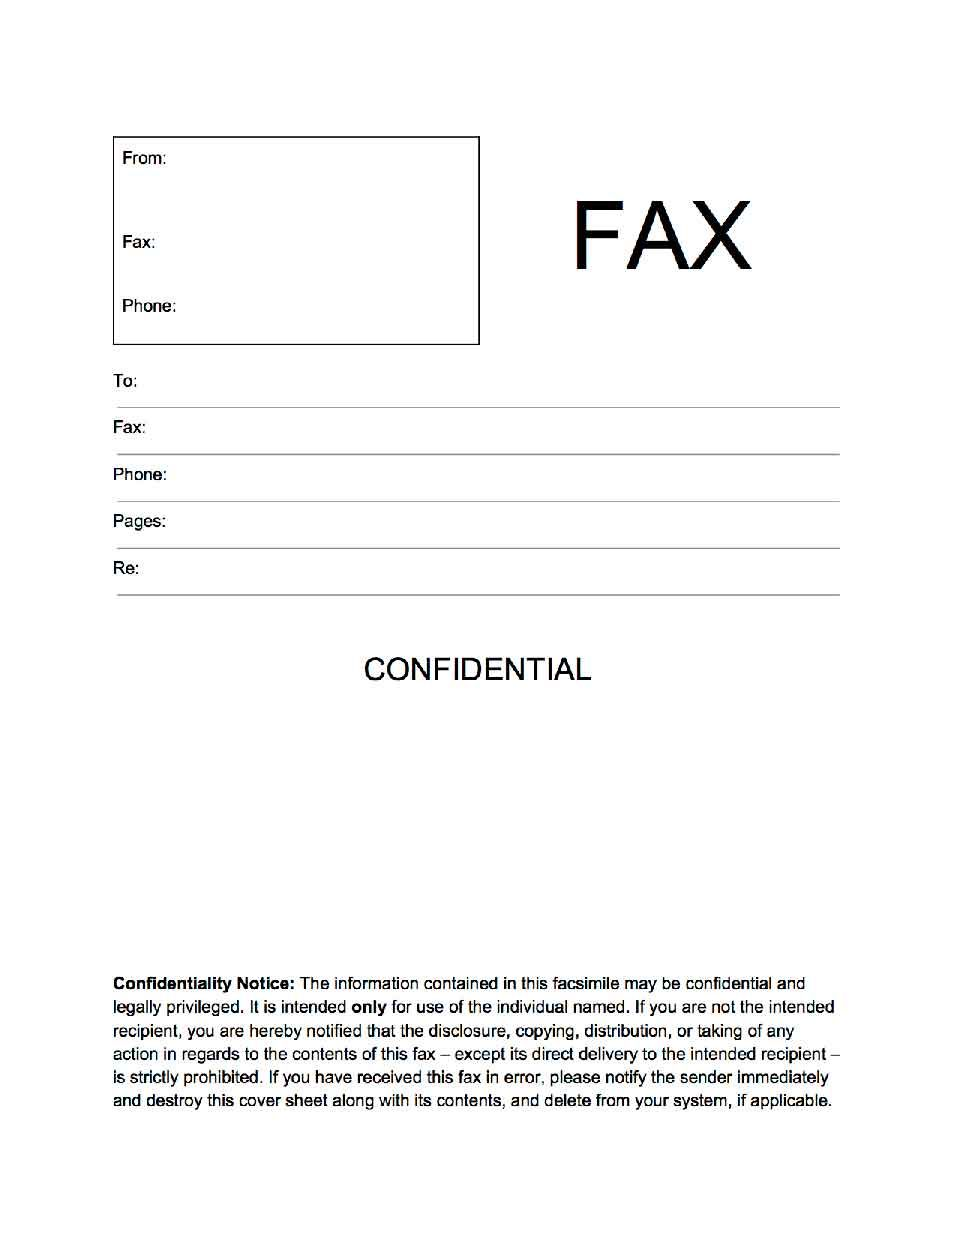 fax cover sheet 8 best ideas about popular fax cover sheets the – Funny Fax Cover Sheet